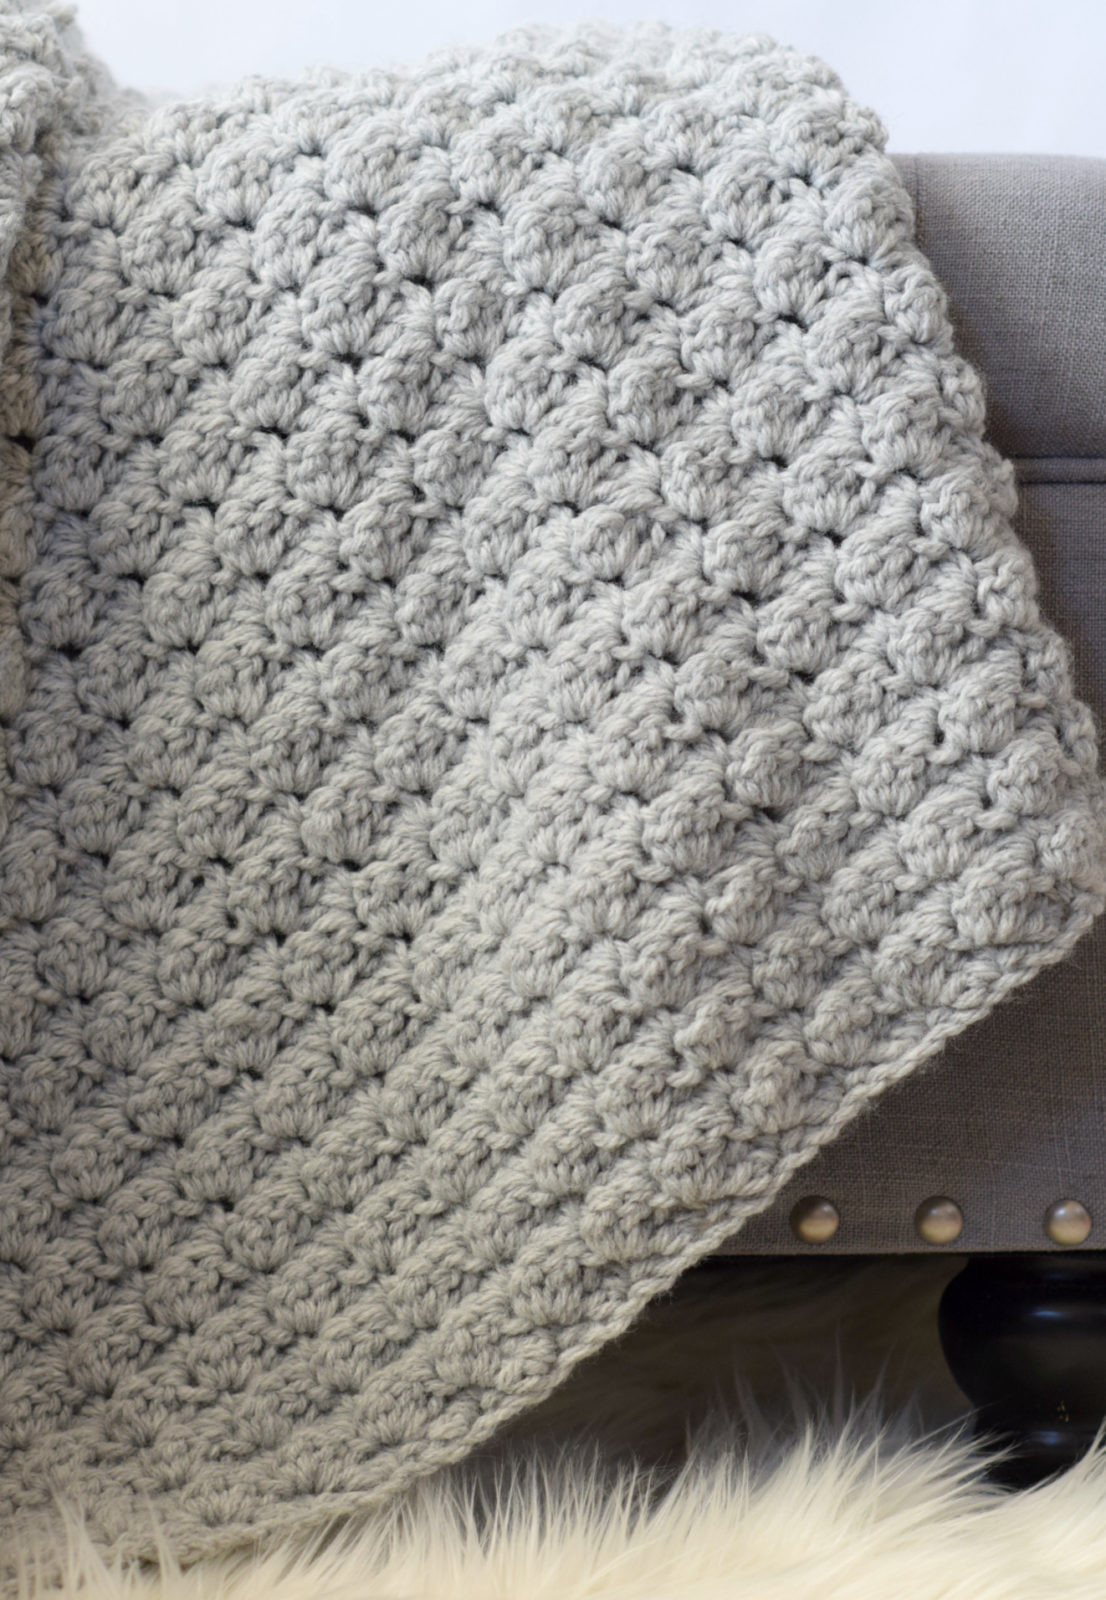 Simple Baby Blanket Crochet Pattern New Simple Crocheted Blanket Go to Pattern – Mama In A Stitch Of Beautiful 46 Pics Simple Baby Blanket Crochet Pattern